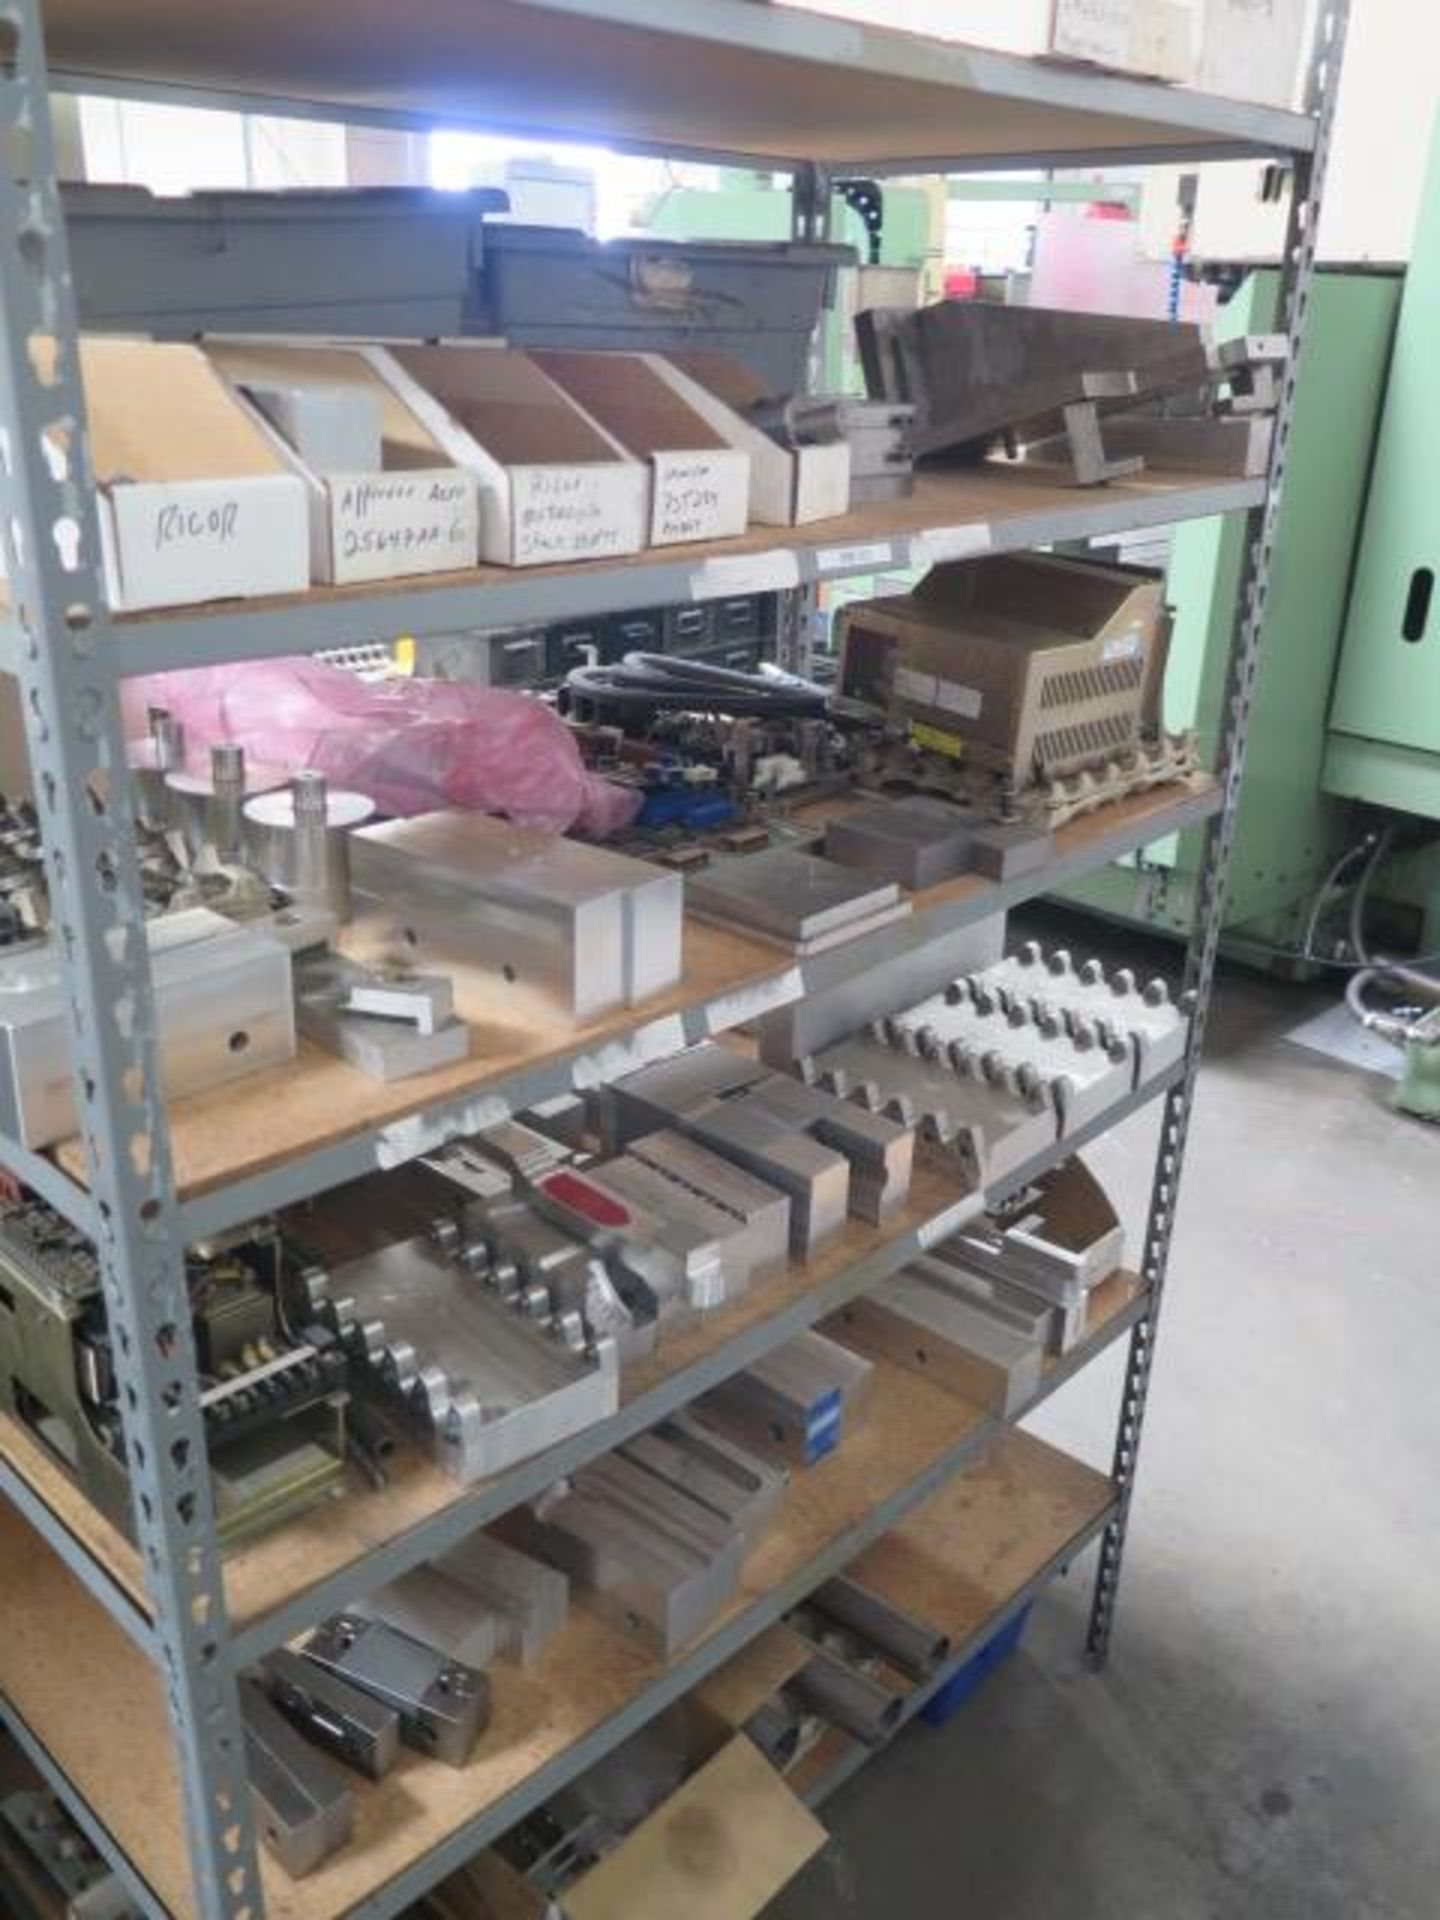 Vise Jaws, Fixtures and Misc w/ (7) Shelves (SOLD AS-IS - NO WARRANTY) - Image 5 of 6